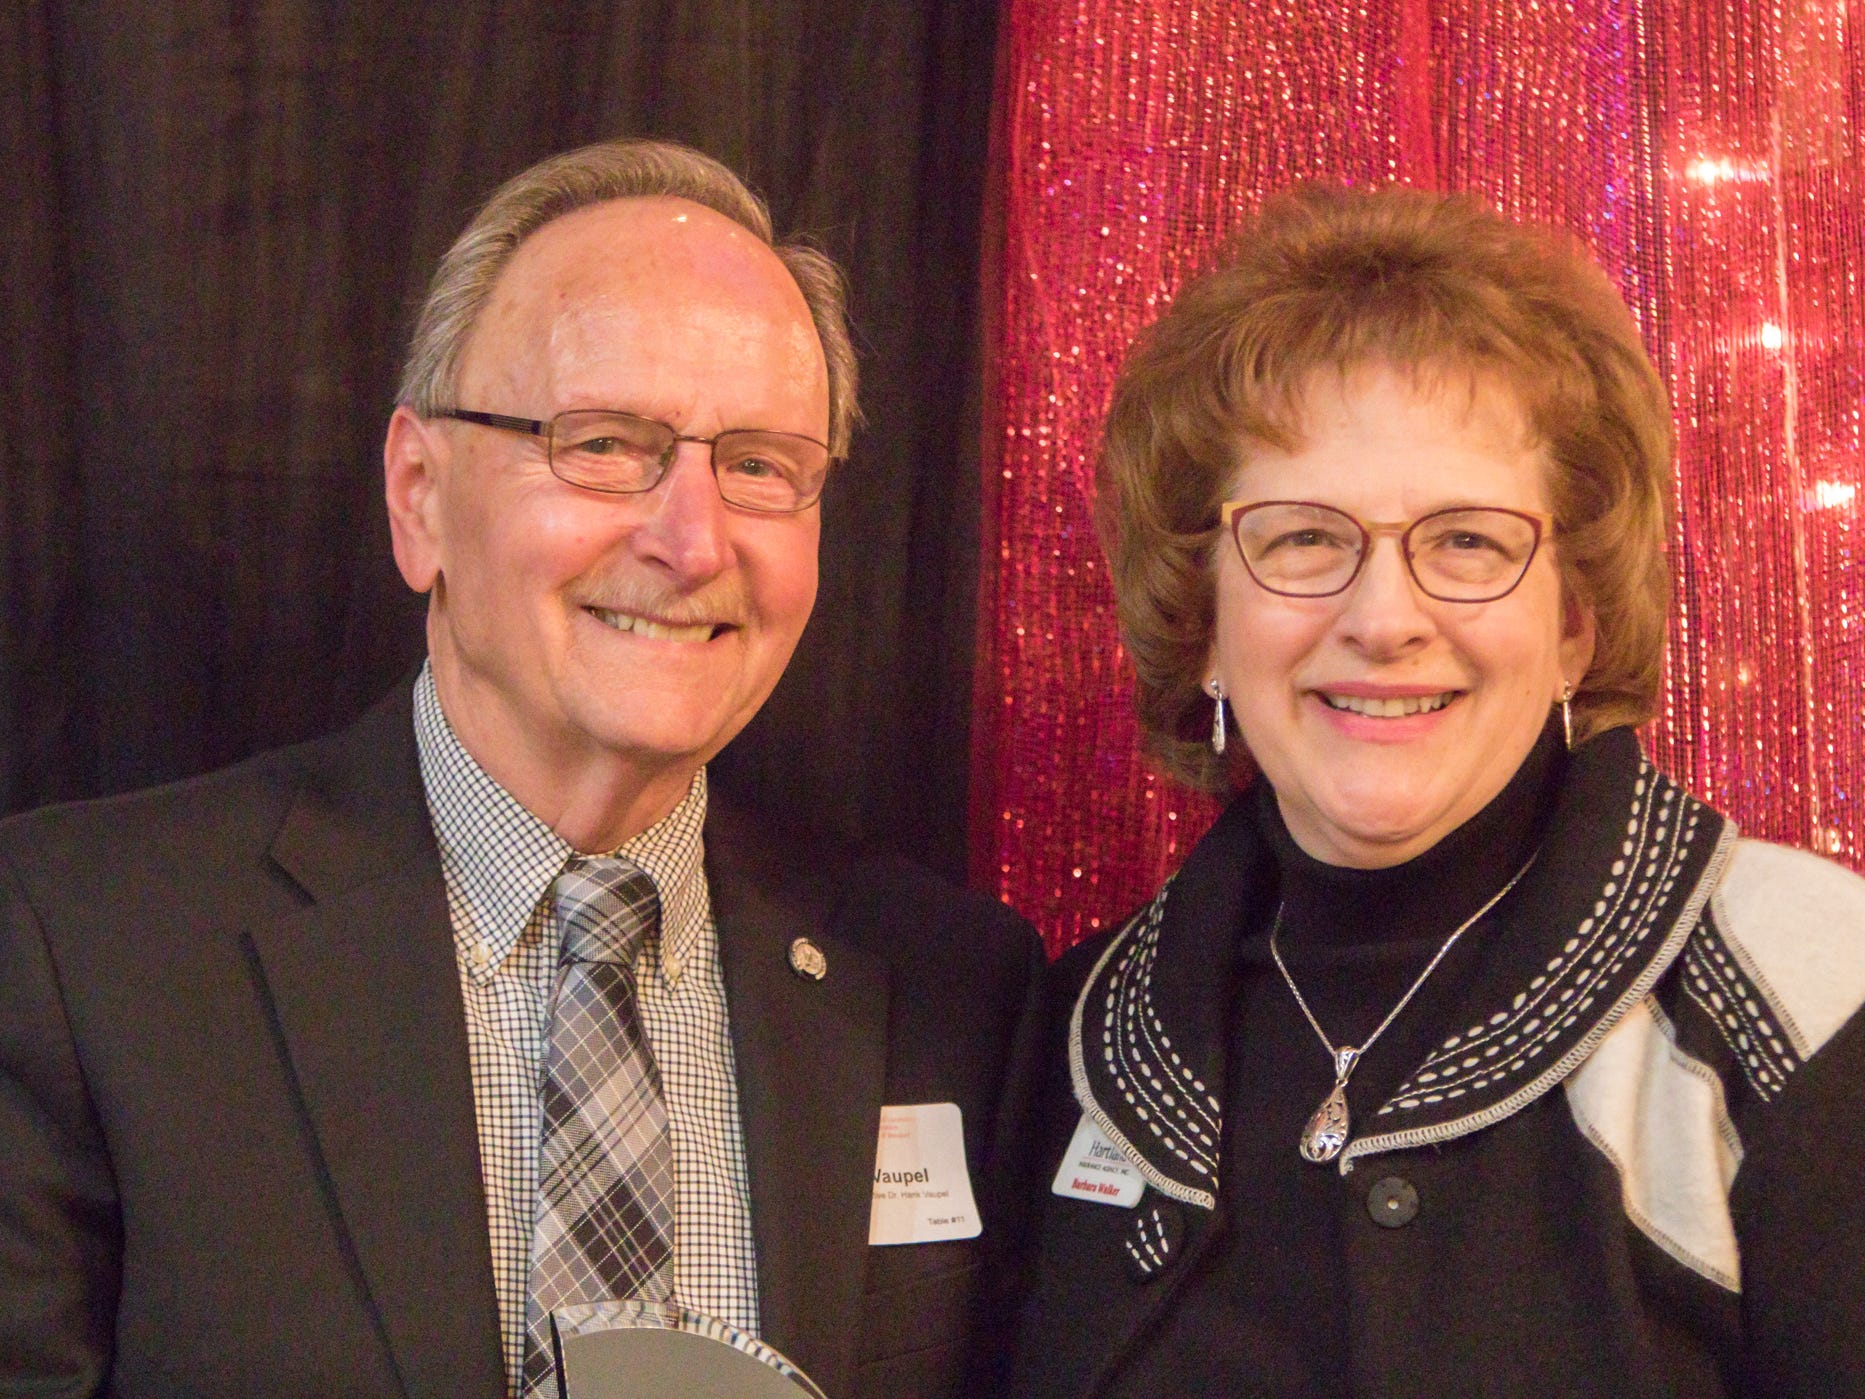 Rep. Hank Vaupel is honored with Business Advocate of the Year award by Hartland Chamber board director Barbara Walker at the chamber's awards dinner Thursday, Jan. 31, 2019.